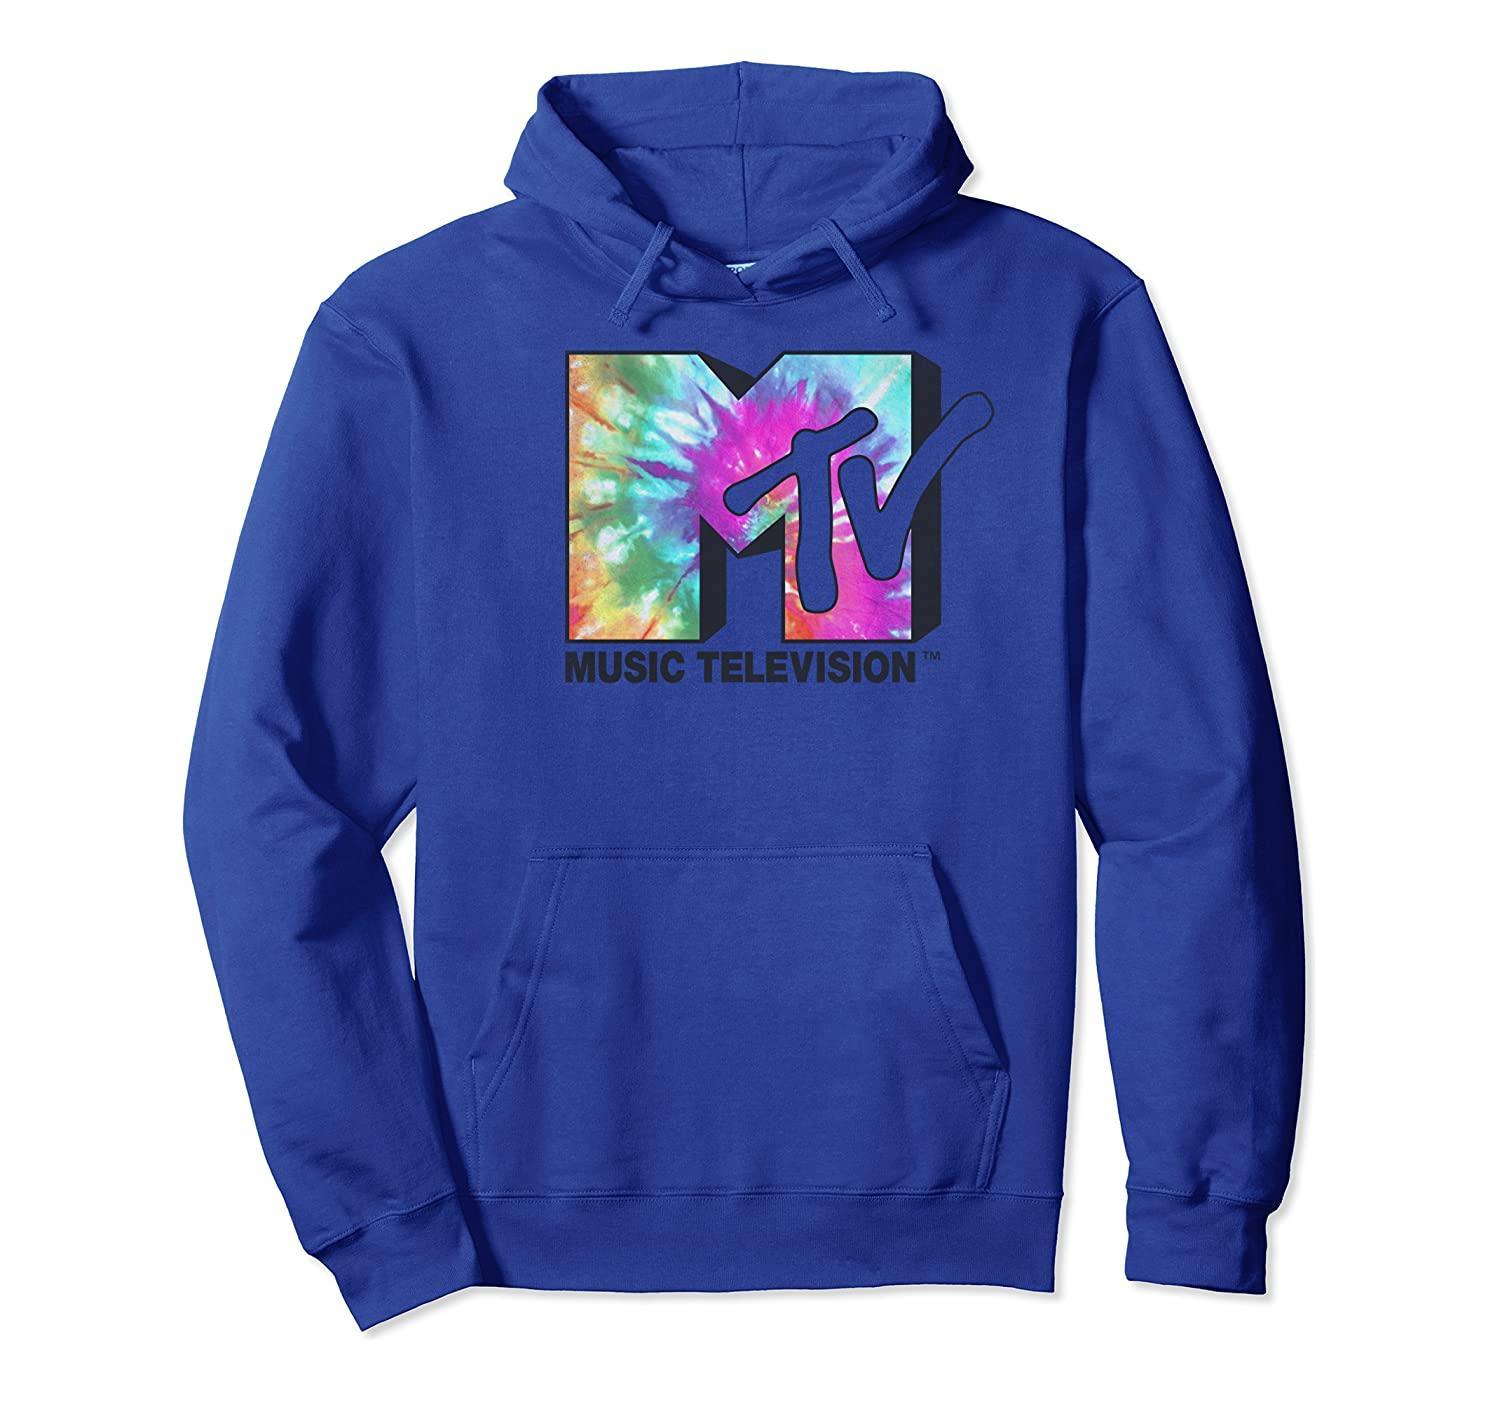 MTV Logo Classic Tie Dye Hoodie Unisex Size S-5XL with Color Black/Grey/Navy/Royal Blue/Dark Heather